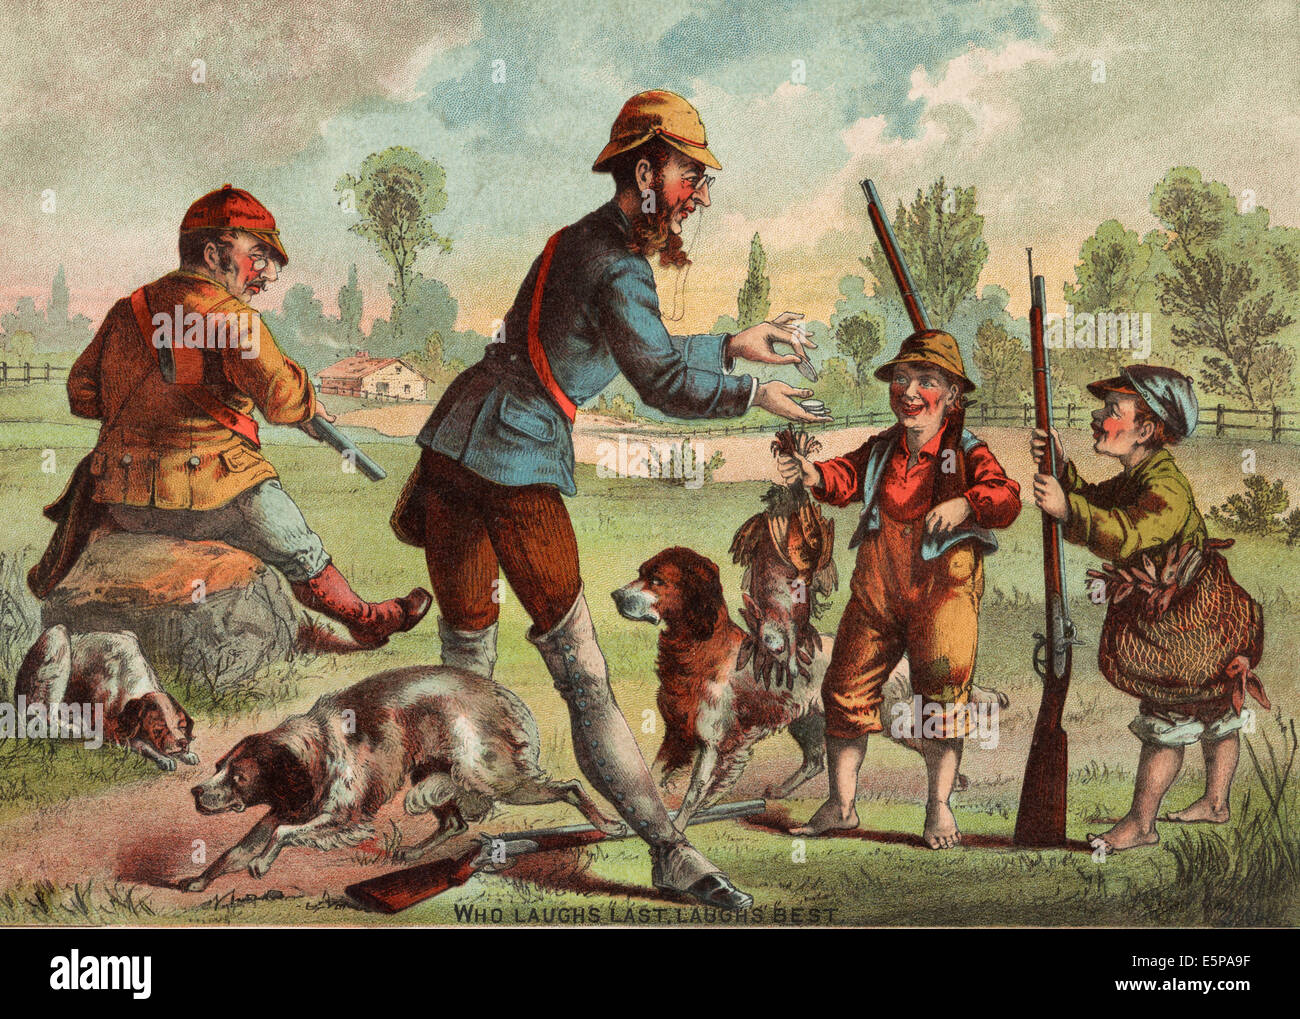 Who laughs last: laughs best.  Hunters, circa 1883 - Stock Image